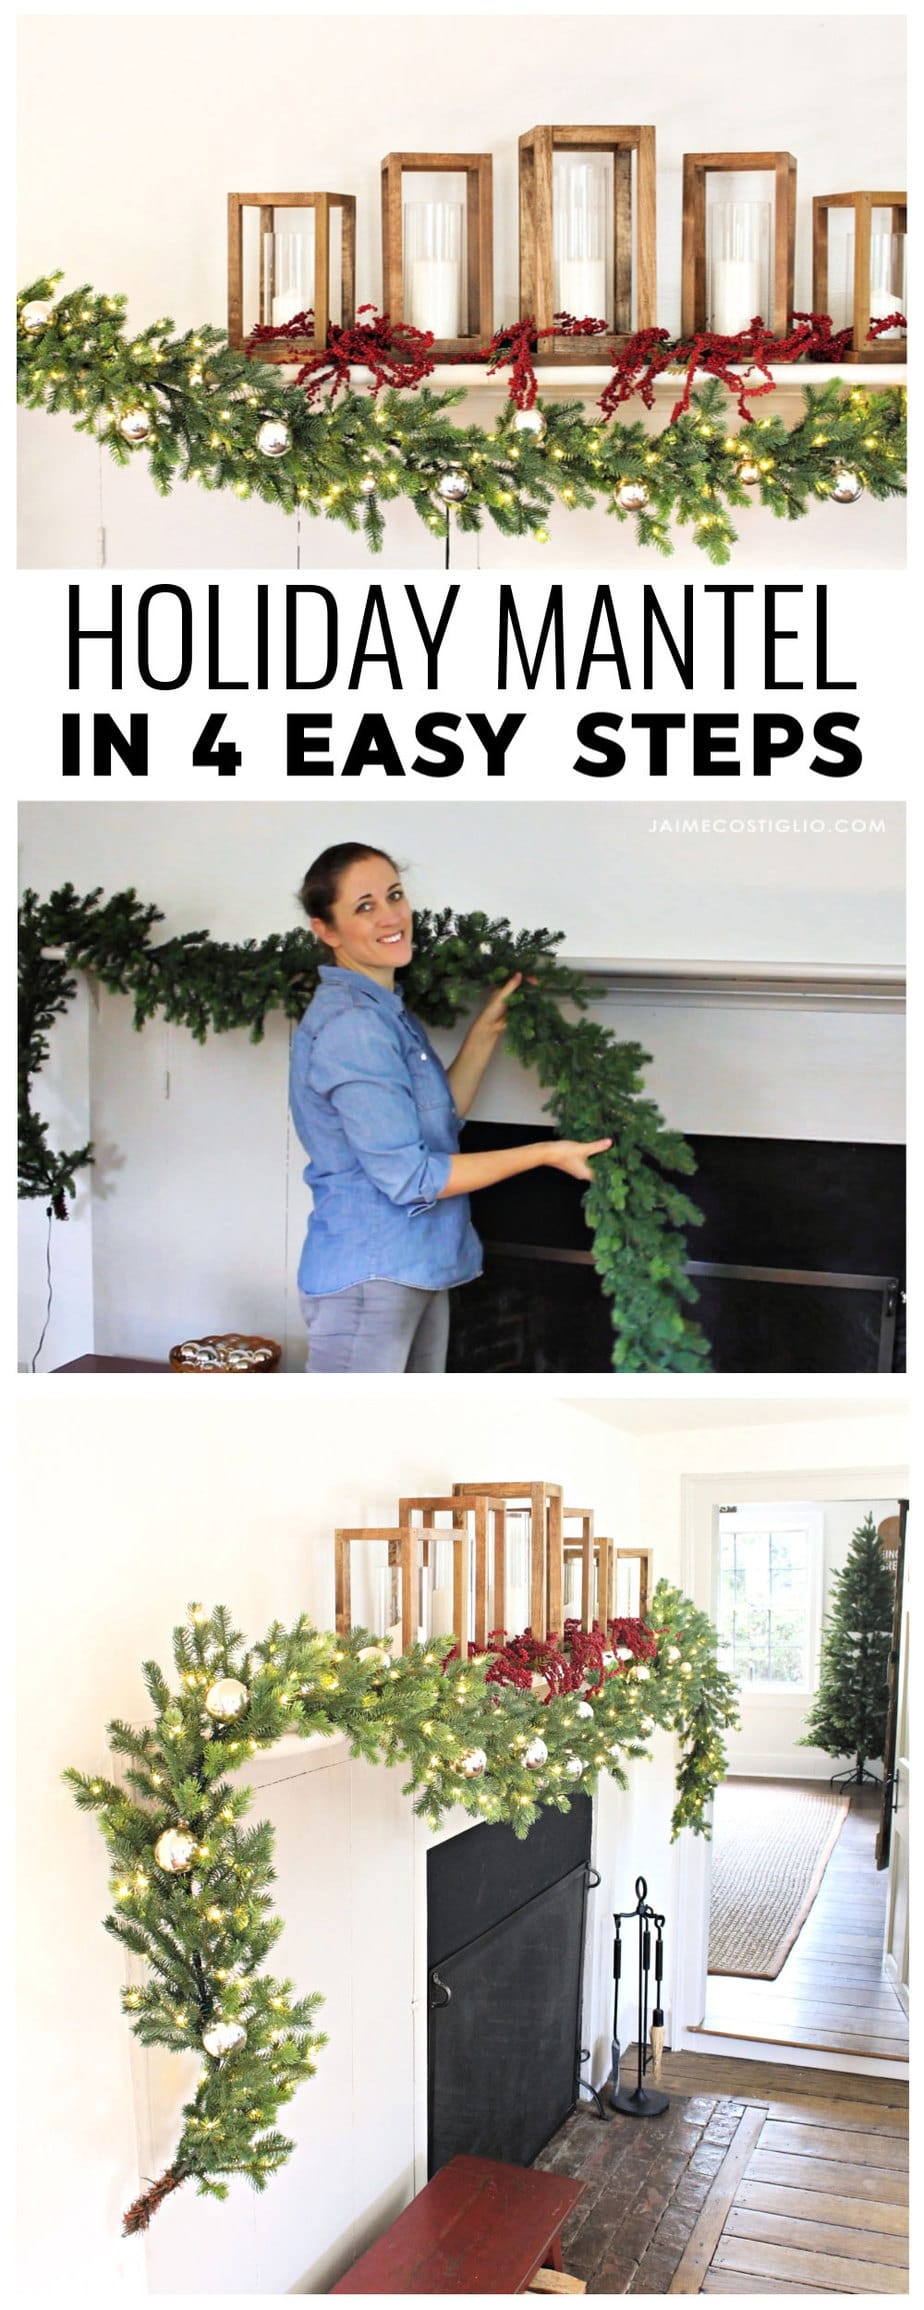 holiday mantel in 4 easy steps